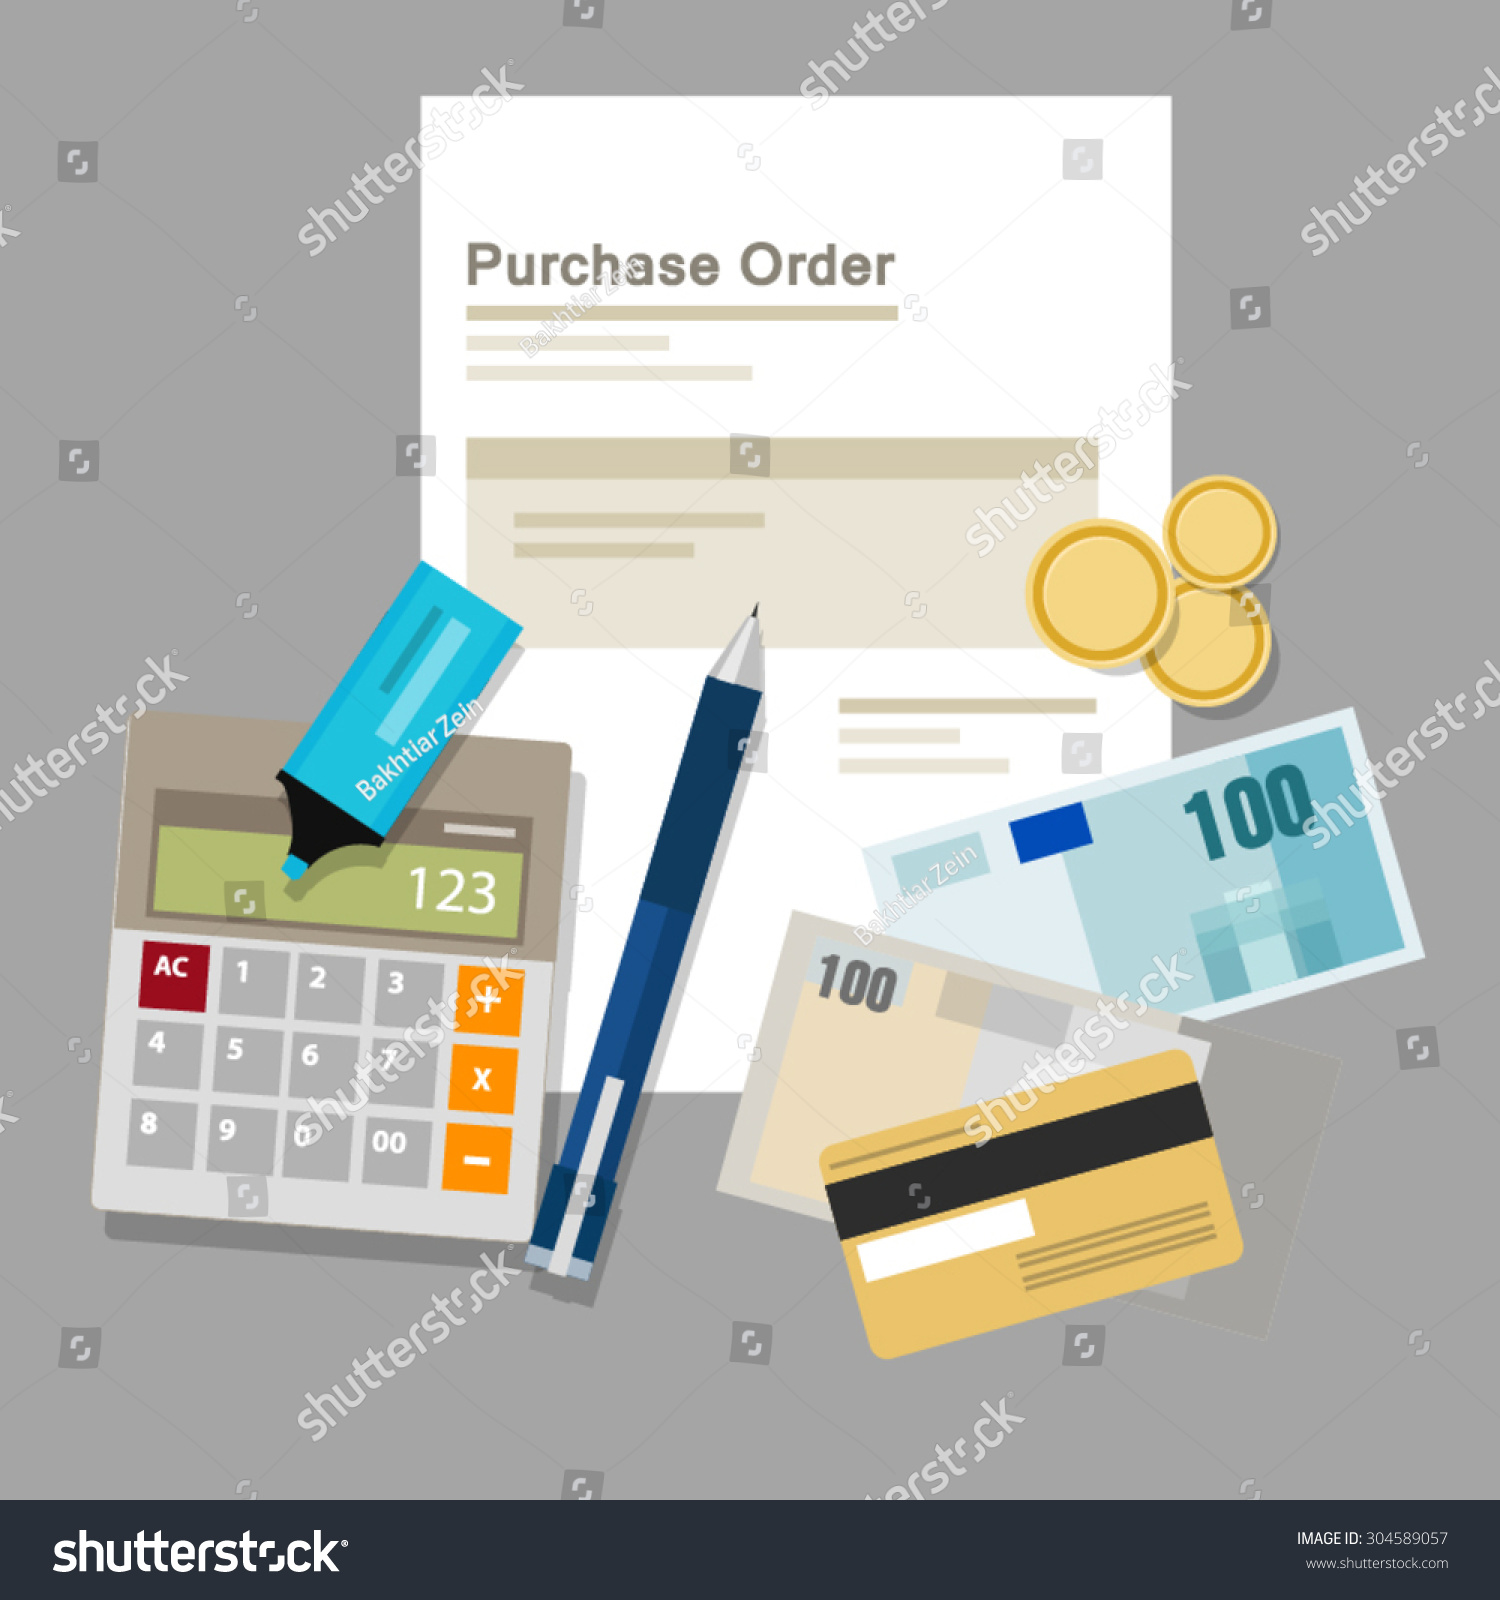 Purchase currency